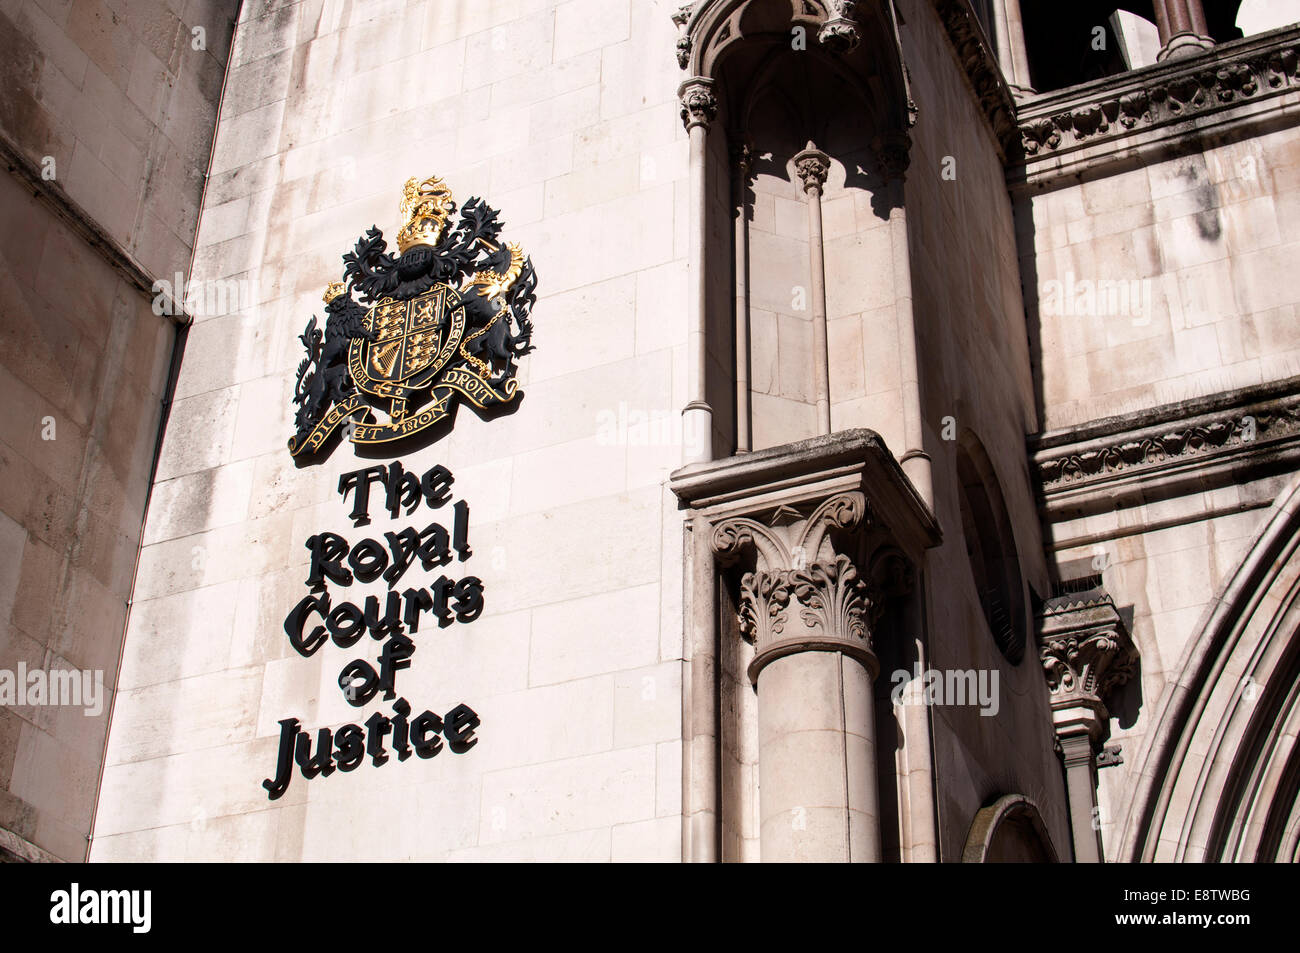 The Royal Courts of Justice, The Strand, London, UK - Stock Image